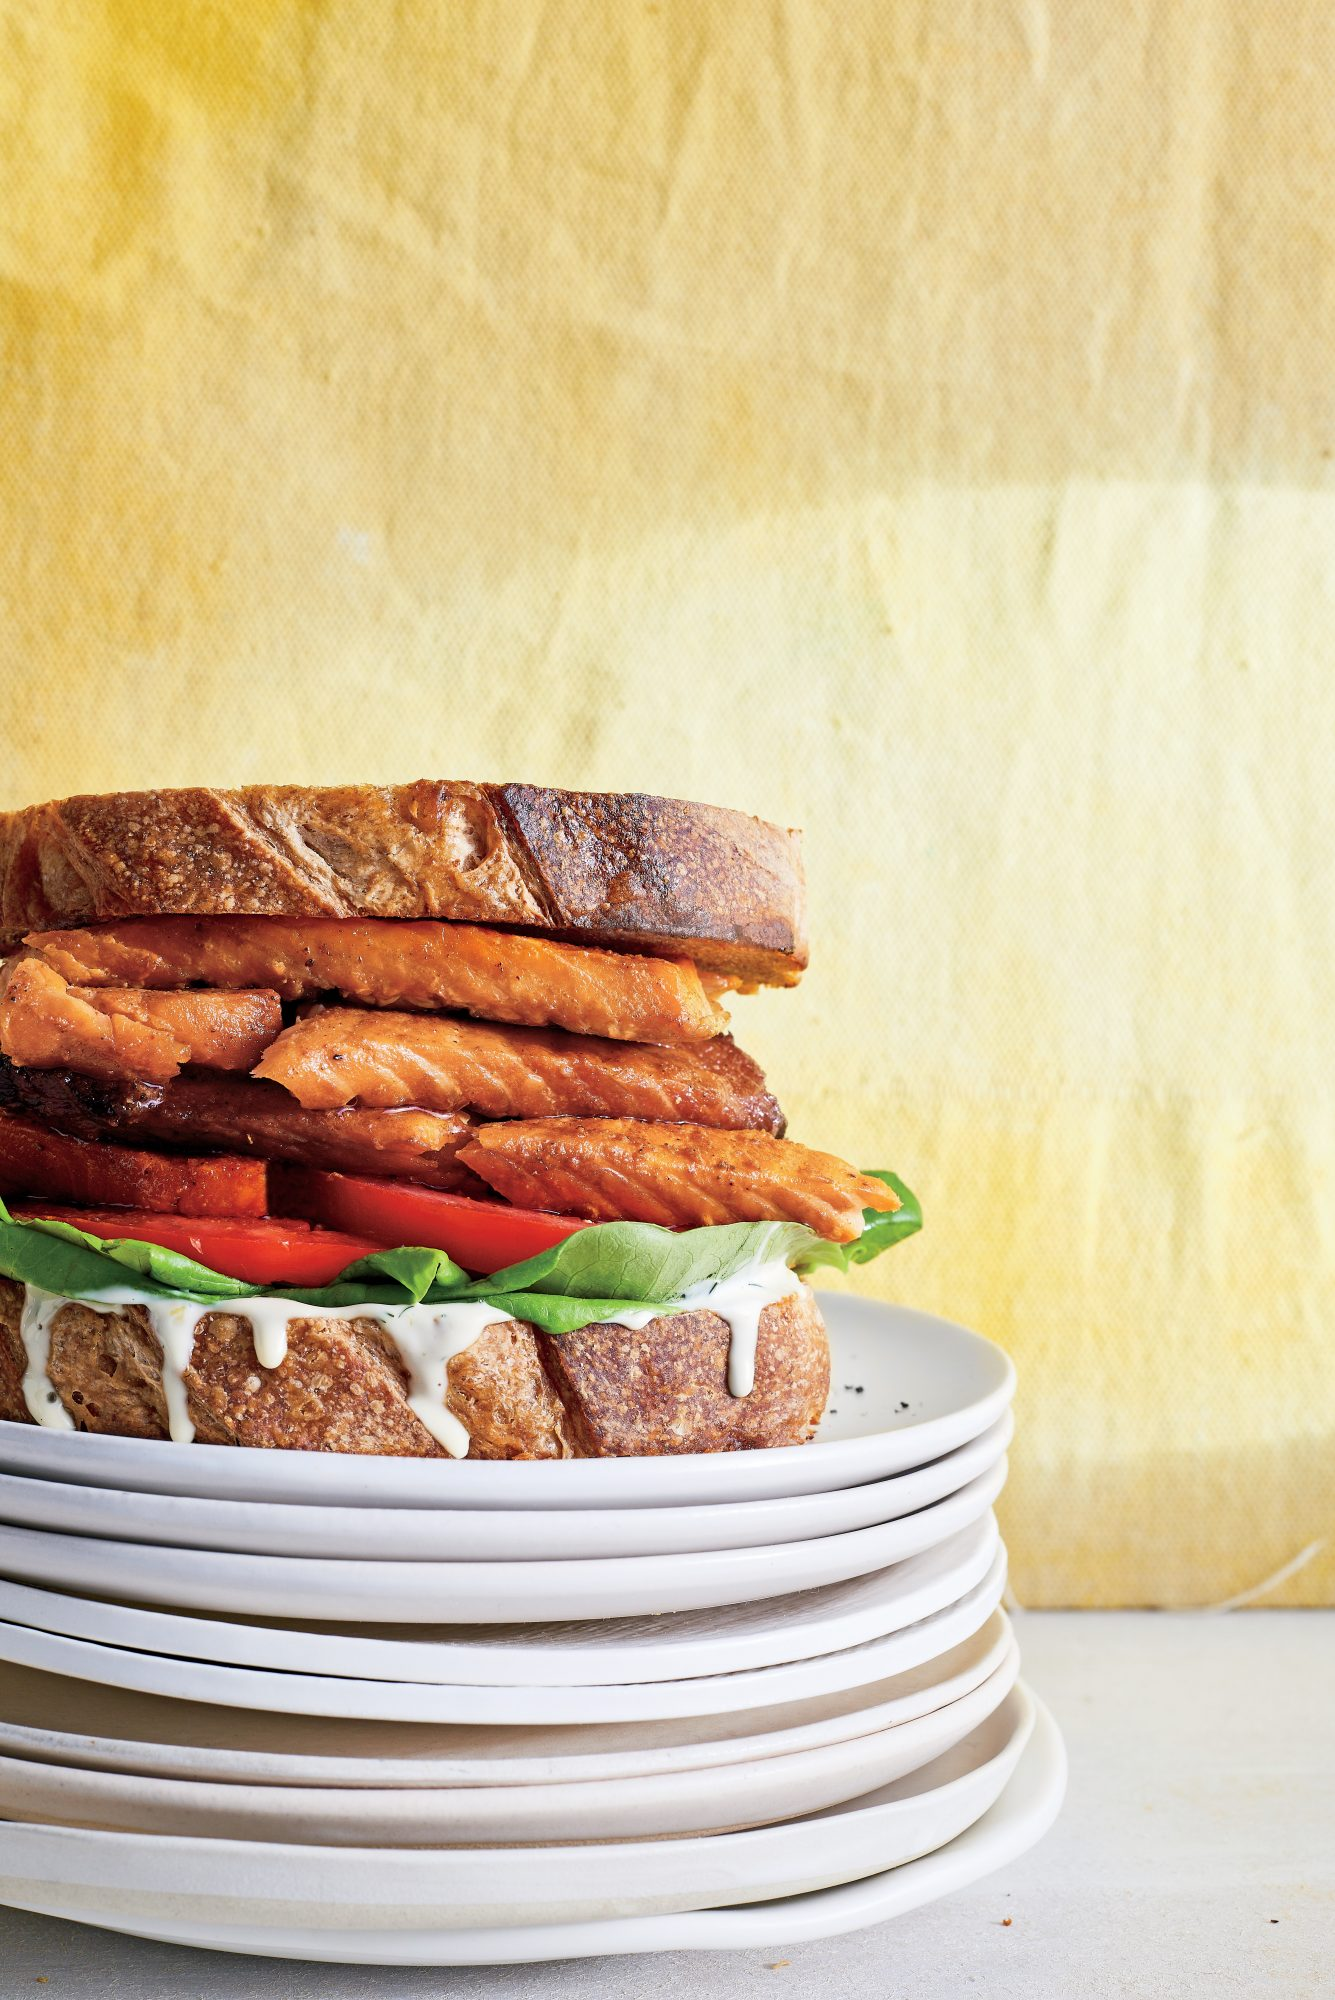 cl-Salmon-Belly BLT with Lemon-Black Pepper Mayo